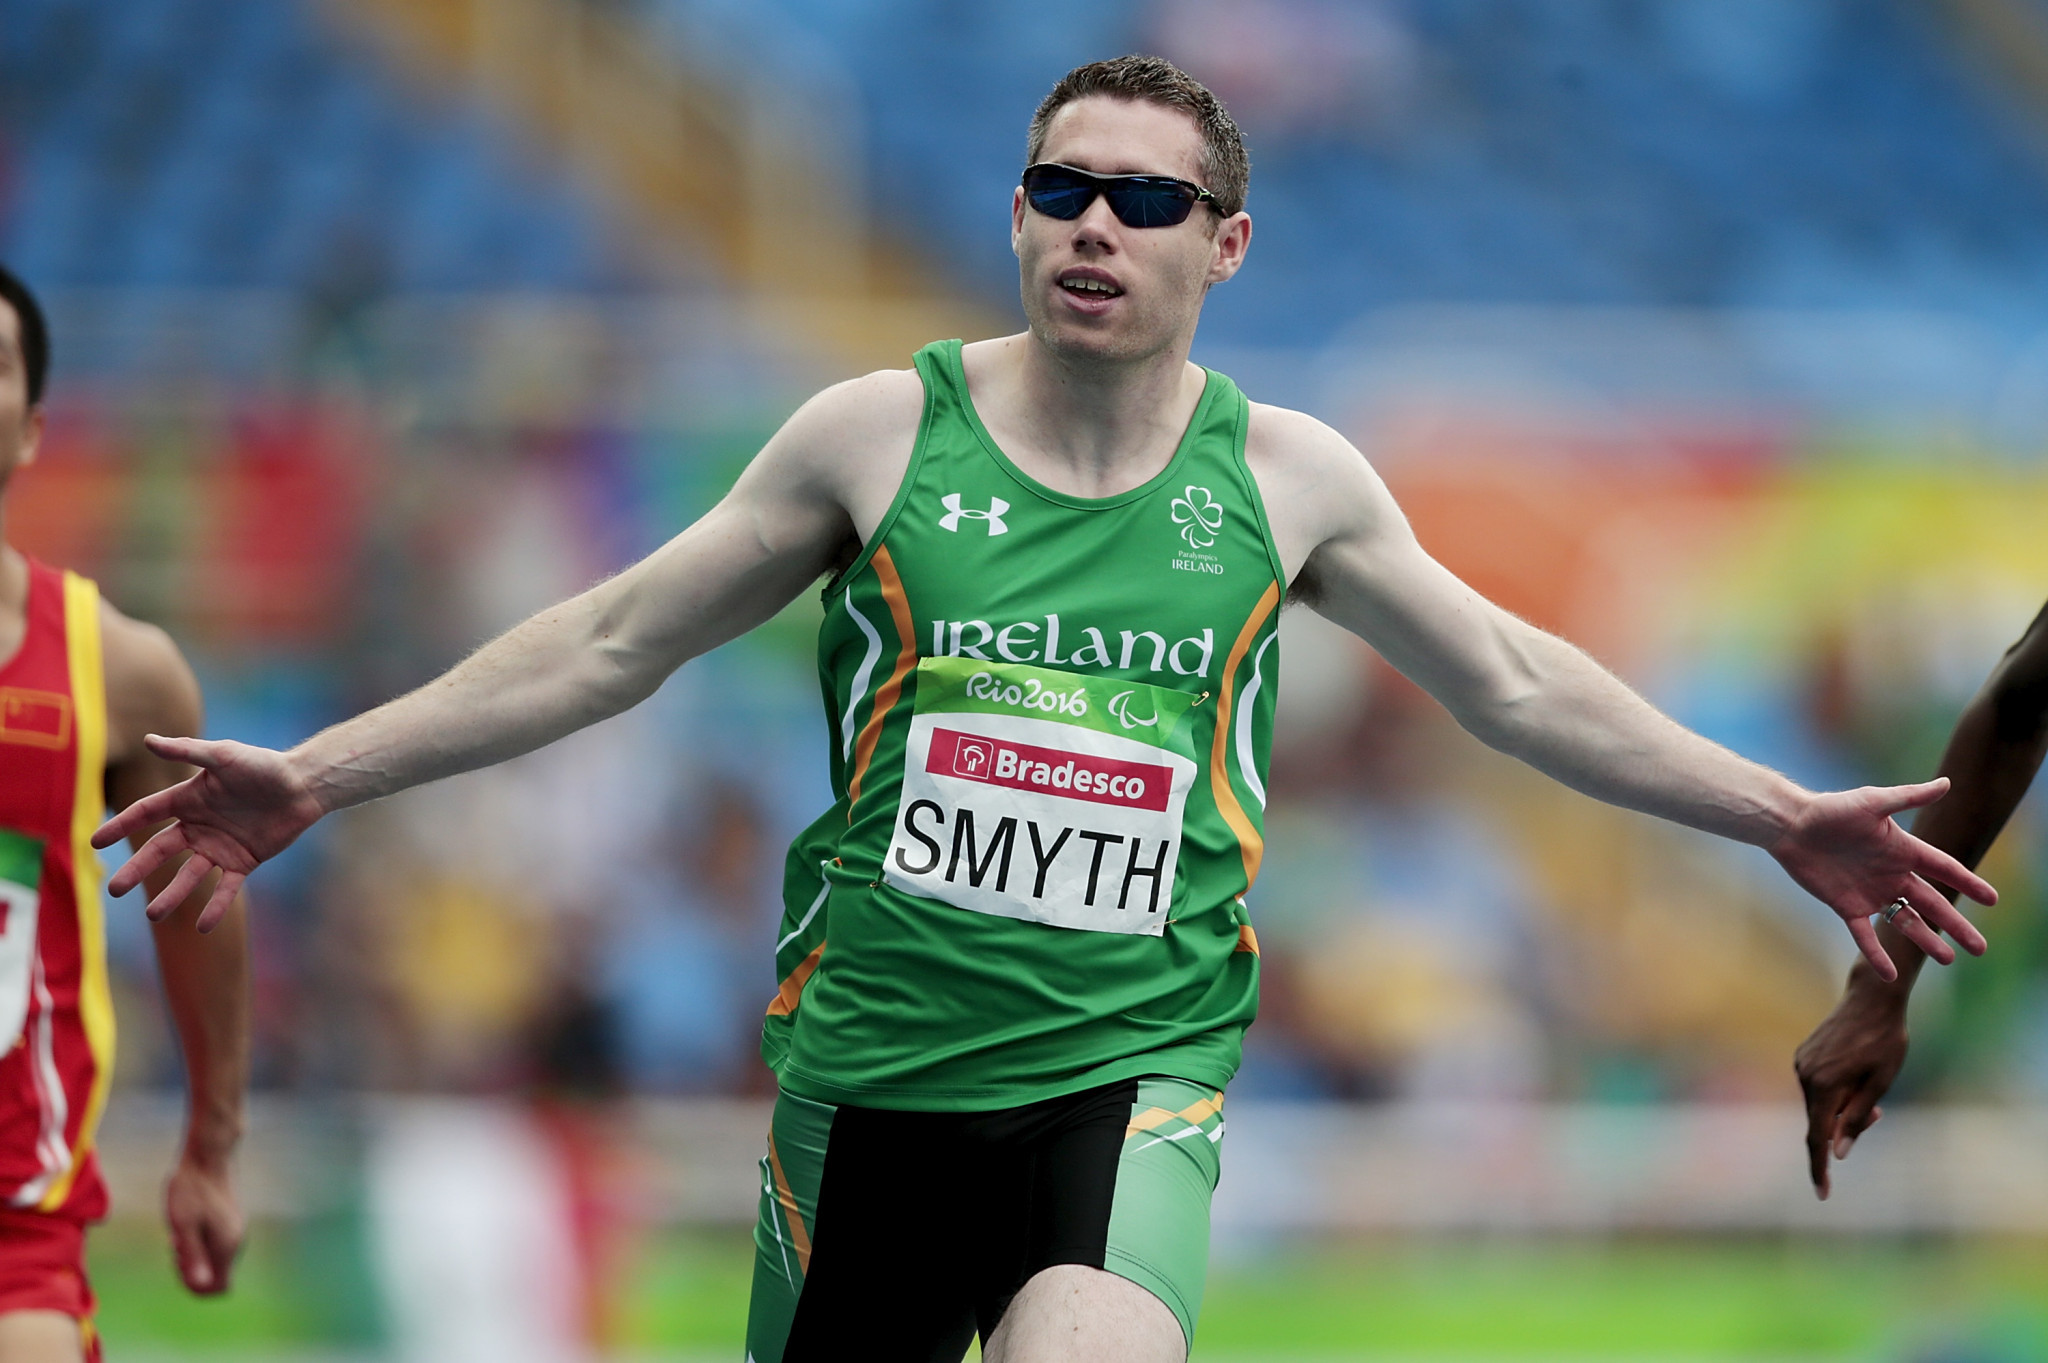 Irish sprinter Smyth among class acts at World Para Athletics Grand Prix in Grosseto